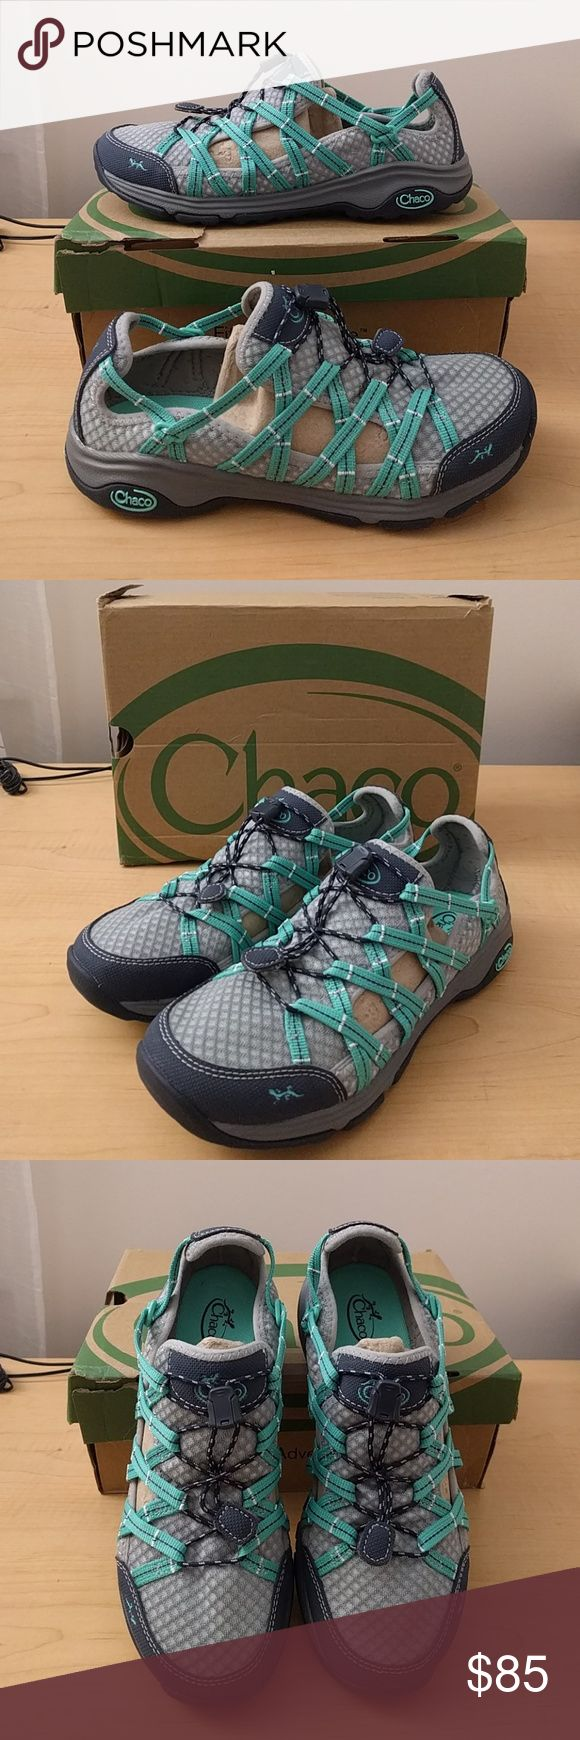 Chaco Women's Outcross Evo Free sport water shoe Brand new women's size 8. Box is a bit damaged. Chaco Shoes Athletic Shoes